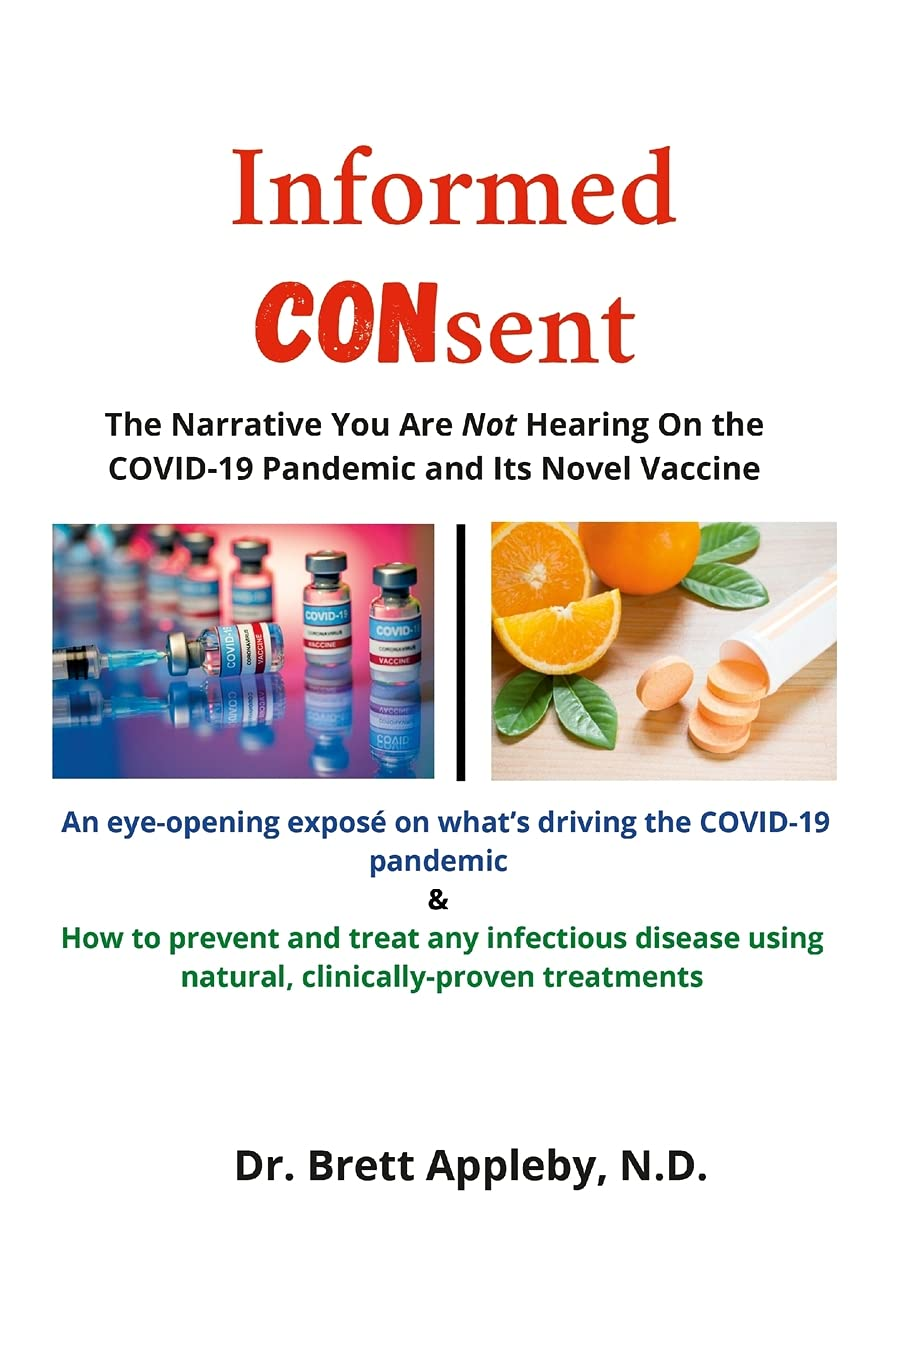 Informed Consent: The Narrative You Are Not Hearing On the COVID-19 Pandemic and Its Novel Vaccine